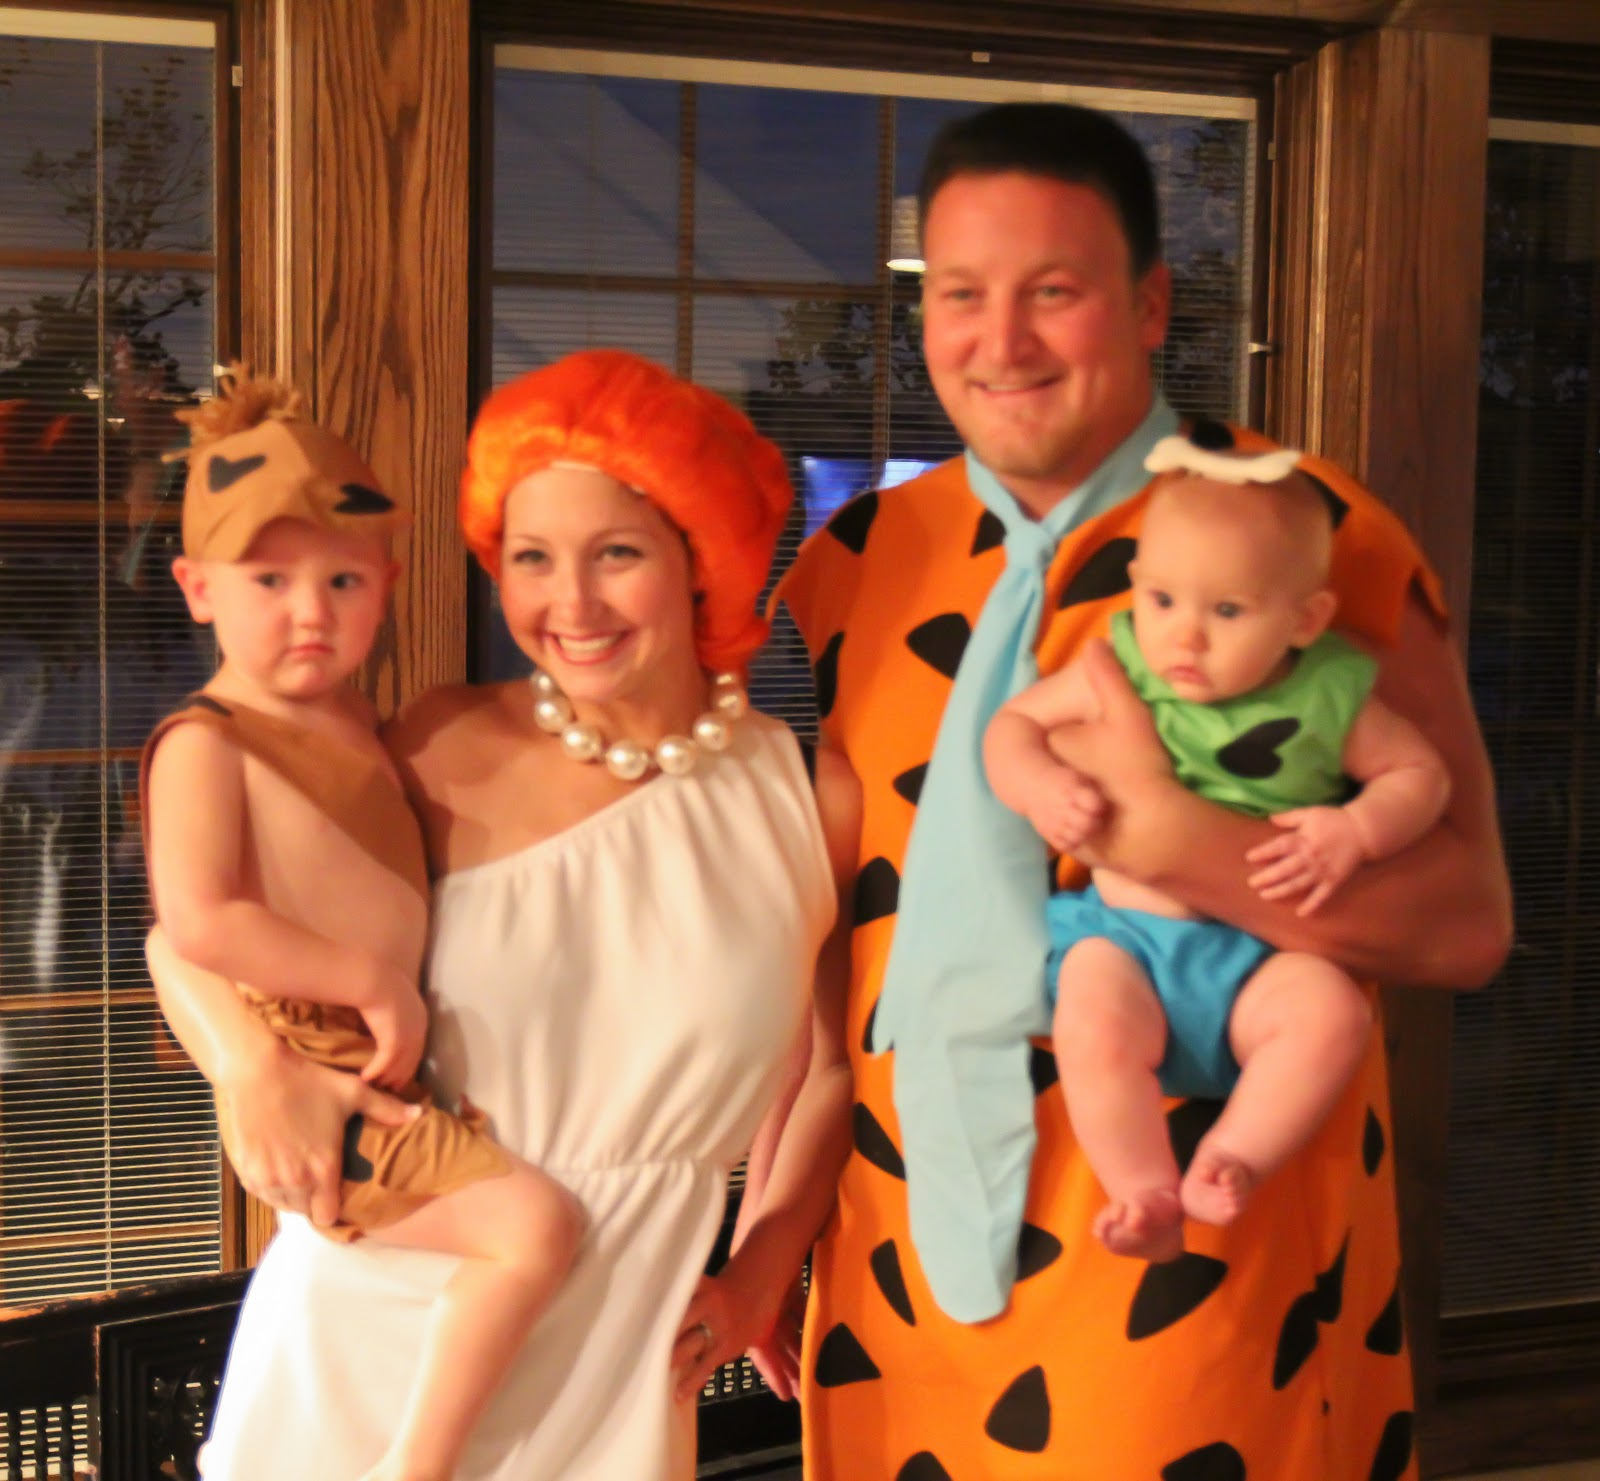 Meet the Flintstones!  sc 1 st  The Rollins Ruckus & The Rollins Ruckus: Meet the Flintstones!